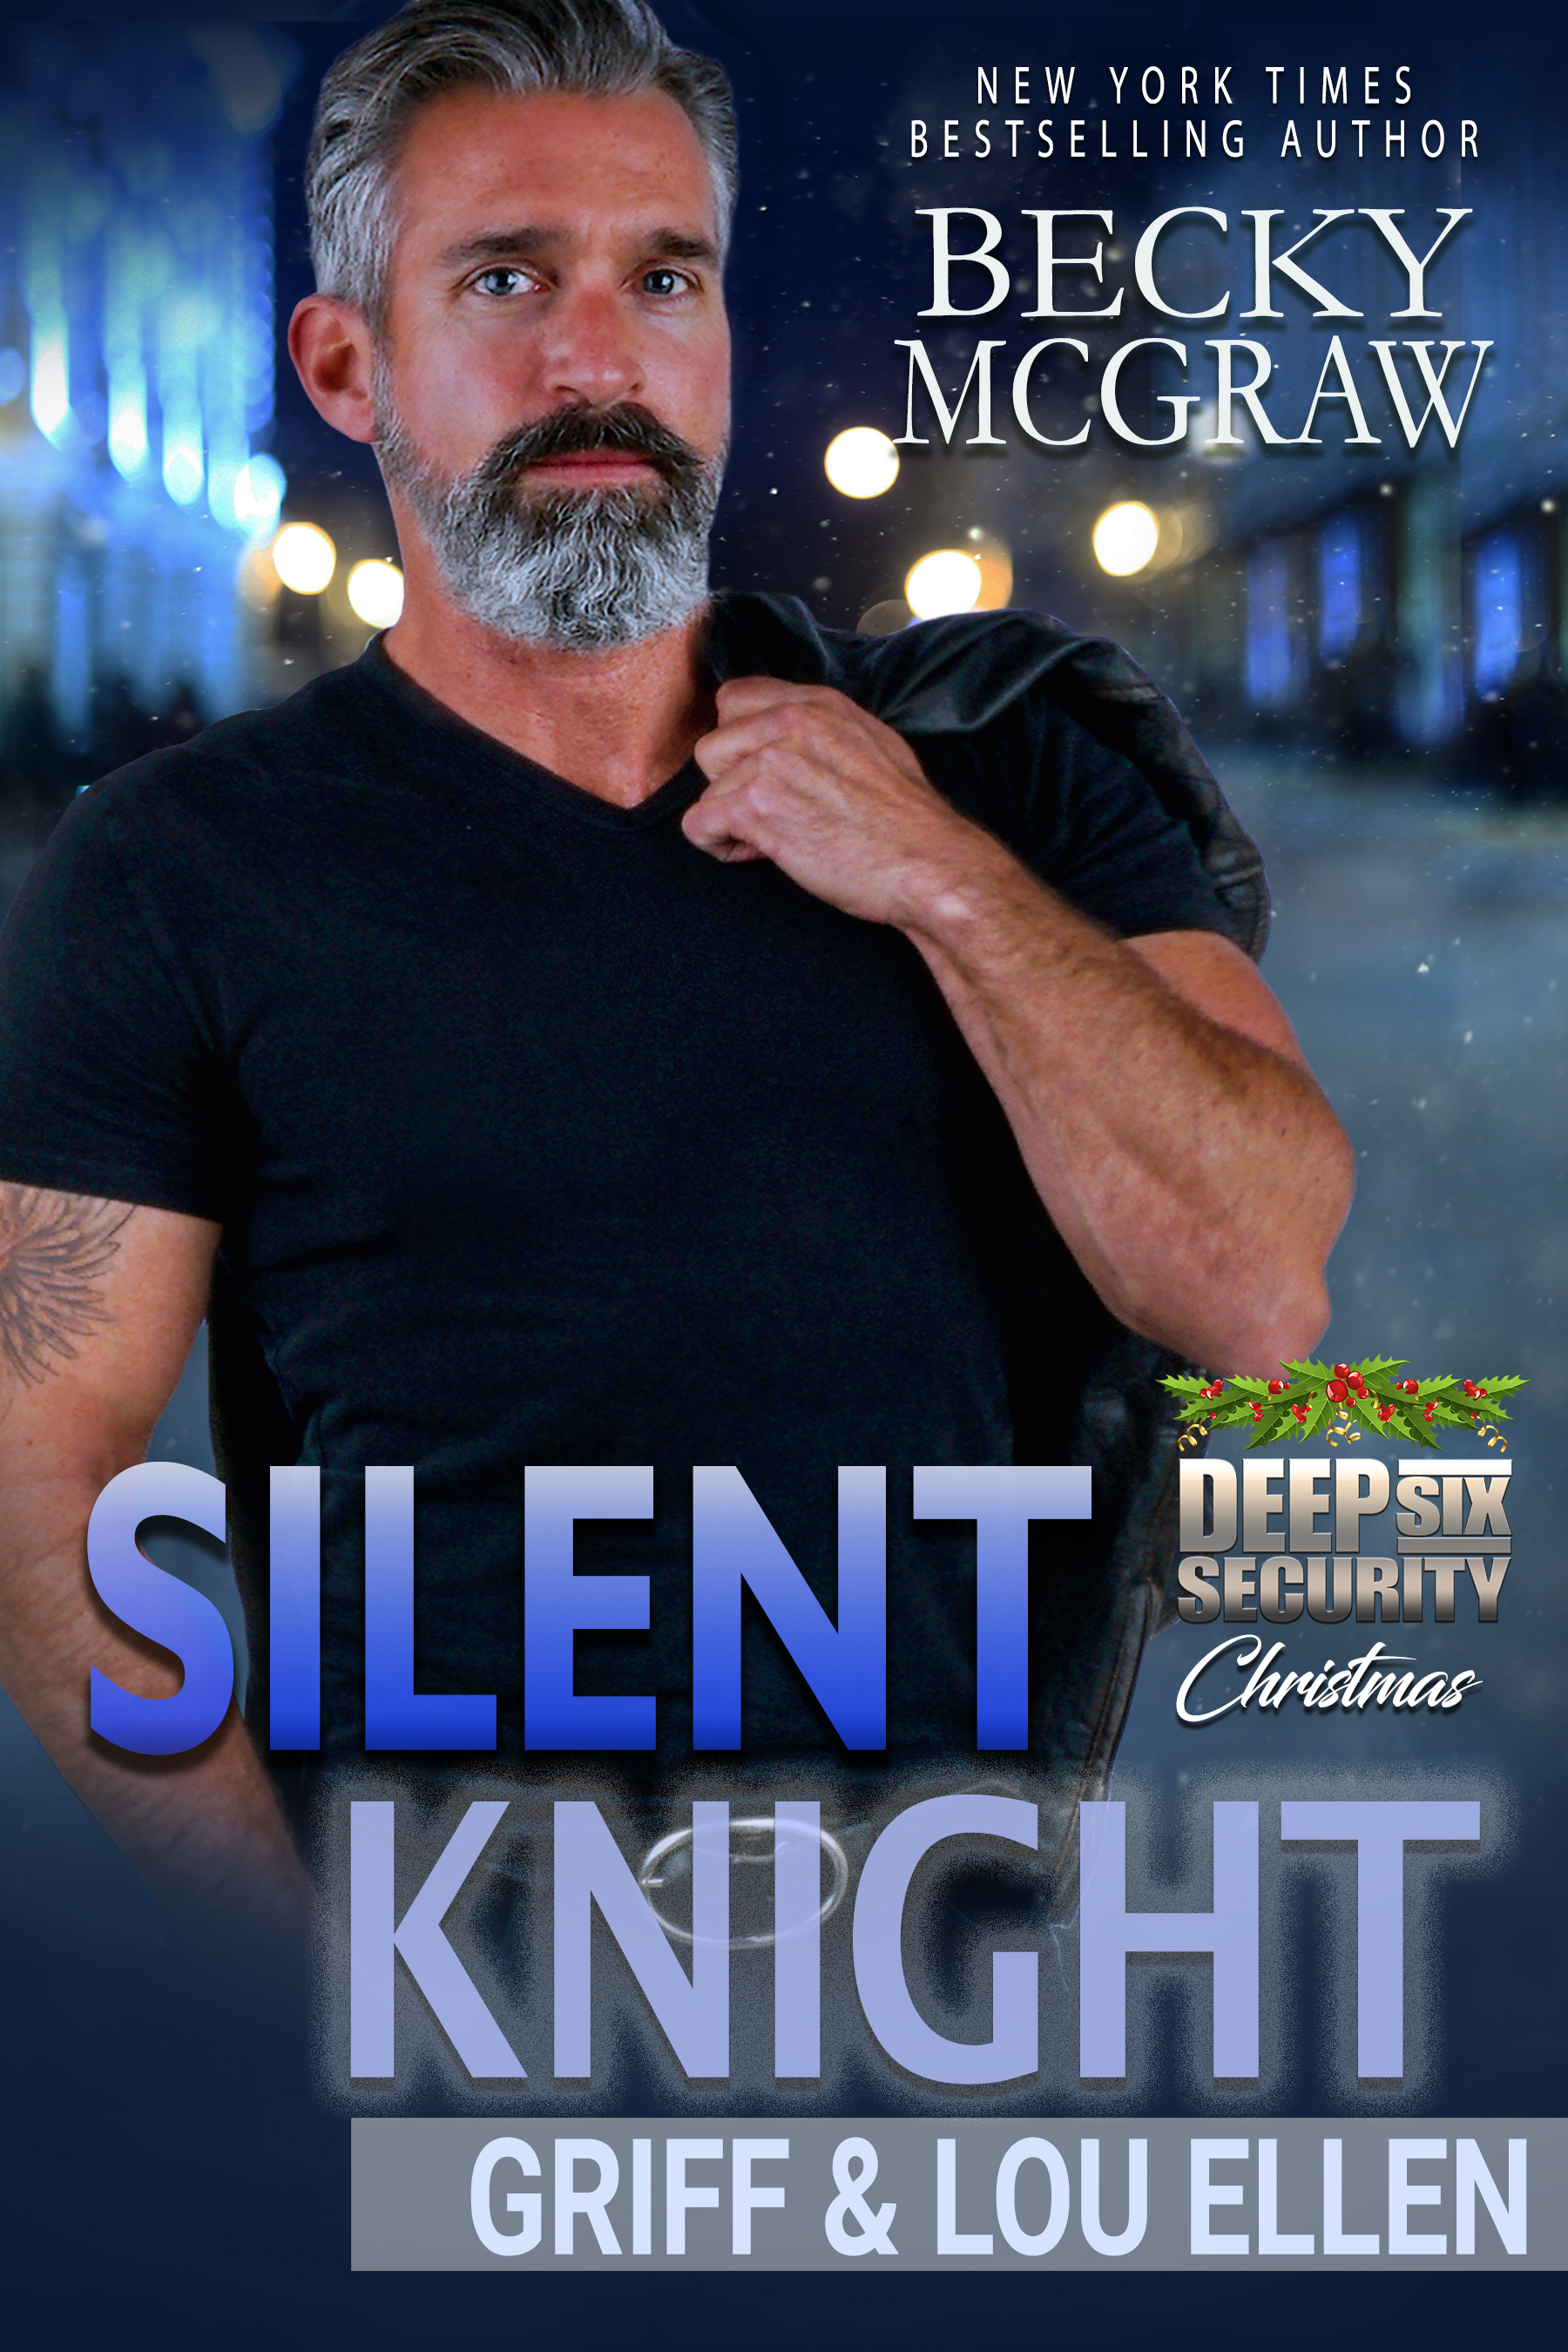 https://i1.wp.com/rockstarlit.com/wp-content/uploads/sites/2/2017/11/silent-knight-cover2-final.jpg